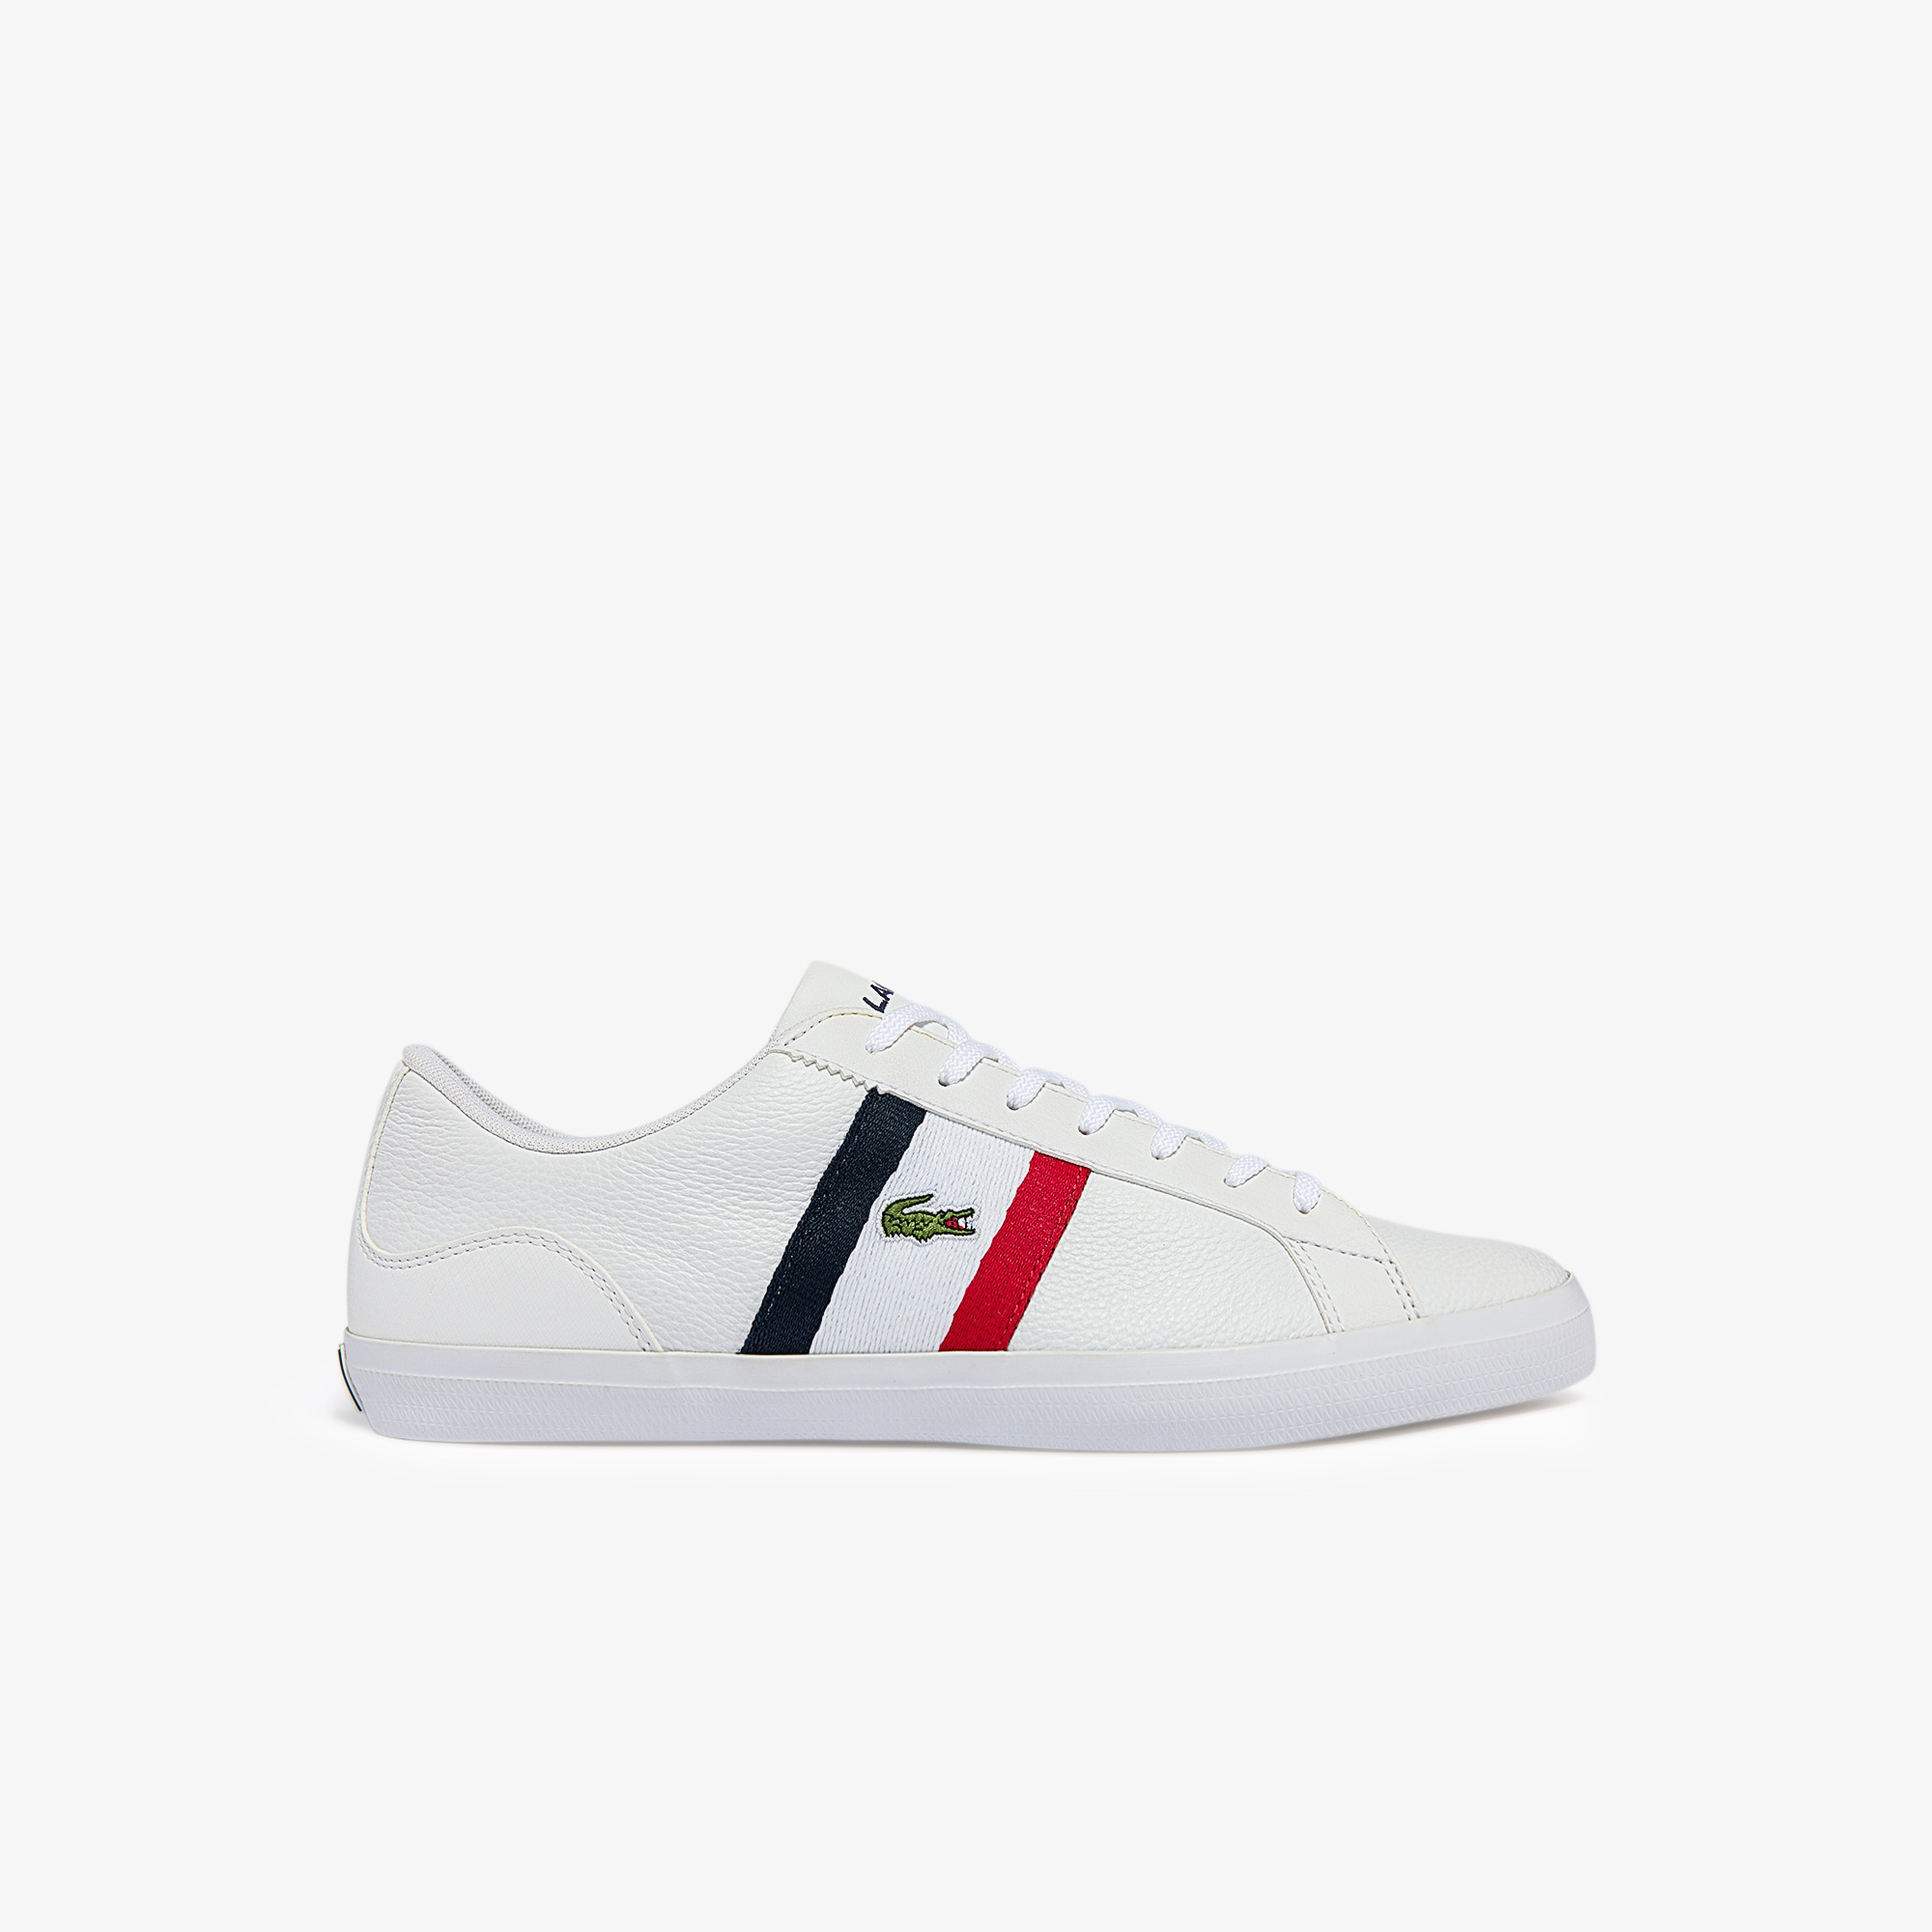 77a94a08431334 Men s Lerond Tumbled Leather Sneakers